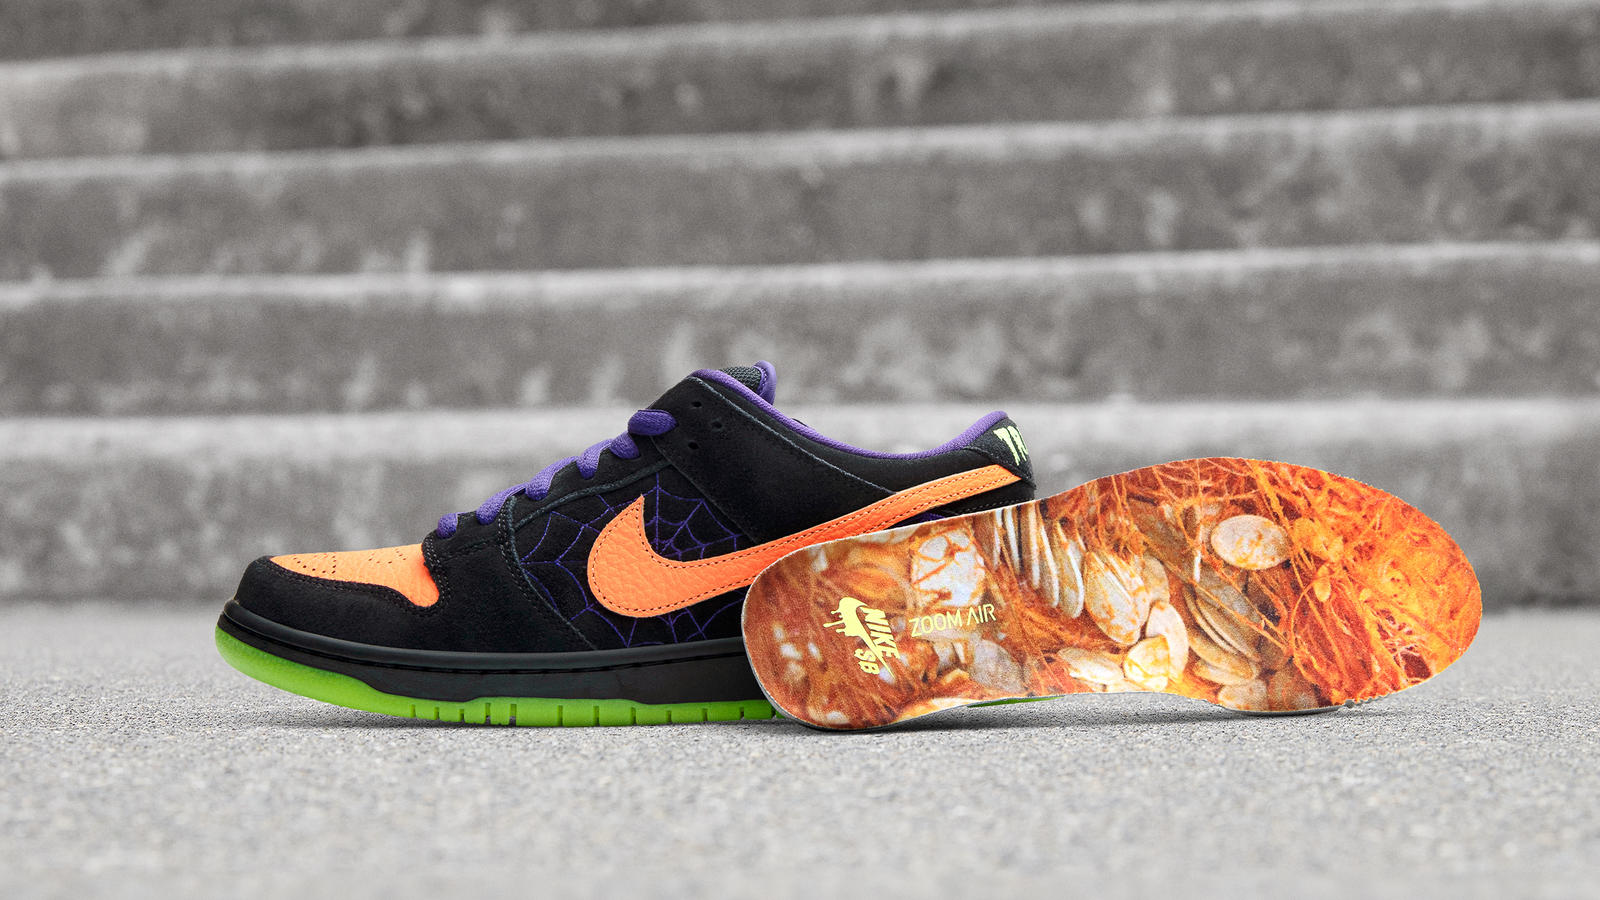 Nike SB Dunk Lo Night of Mischief Halloween 2